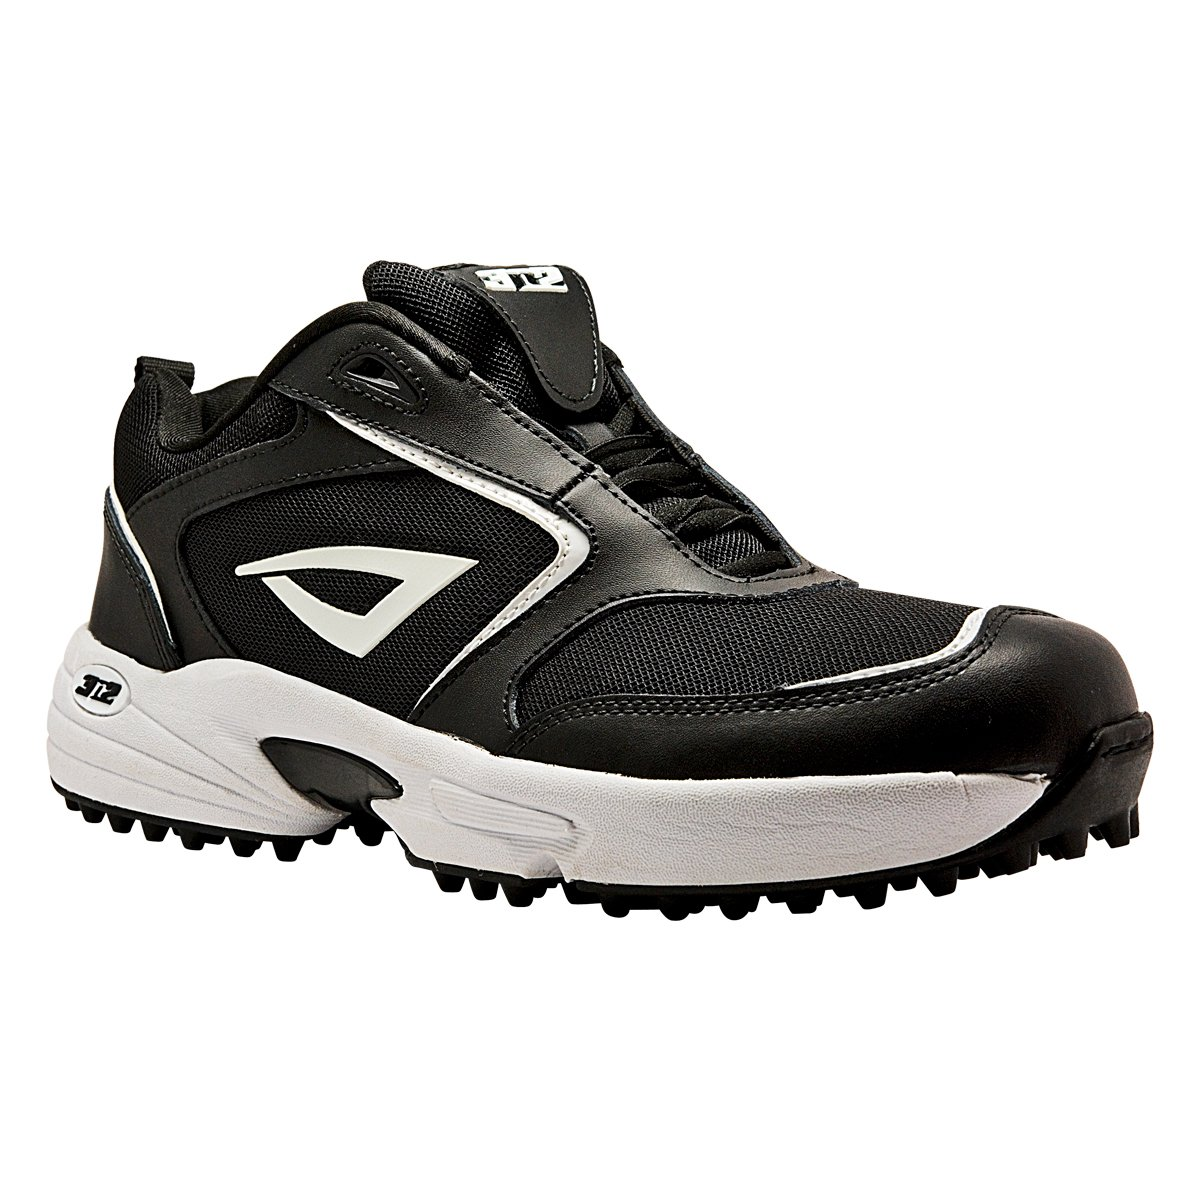 3N2 Mofo Turf Trainer B00BHNEN20 13|Black